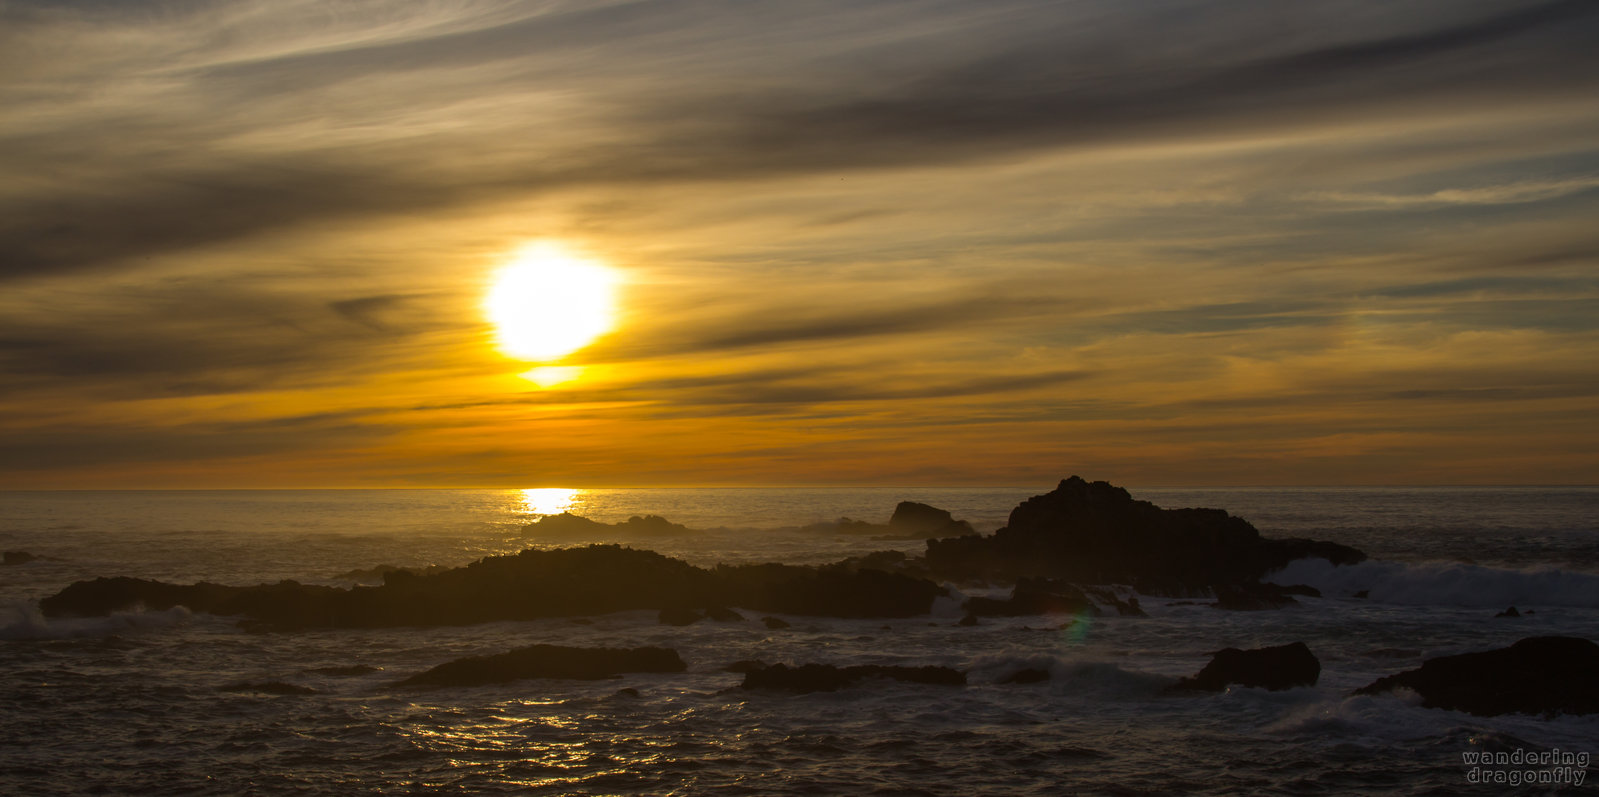 Blurred descending sun -- cloud, ocean, rock, sun, sunset, water, wave